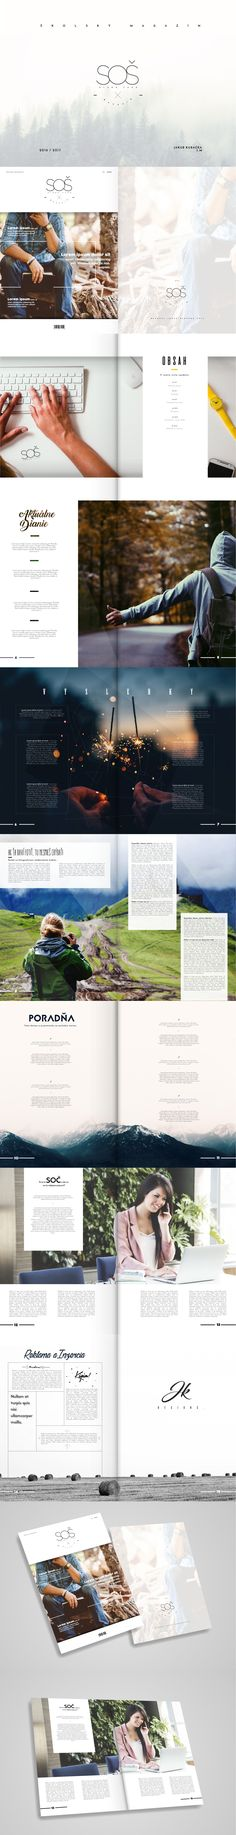 Just some idea of mine, design of magazine for my school but was not appreciated...